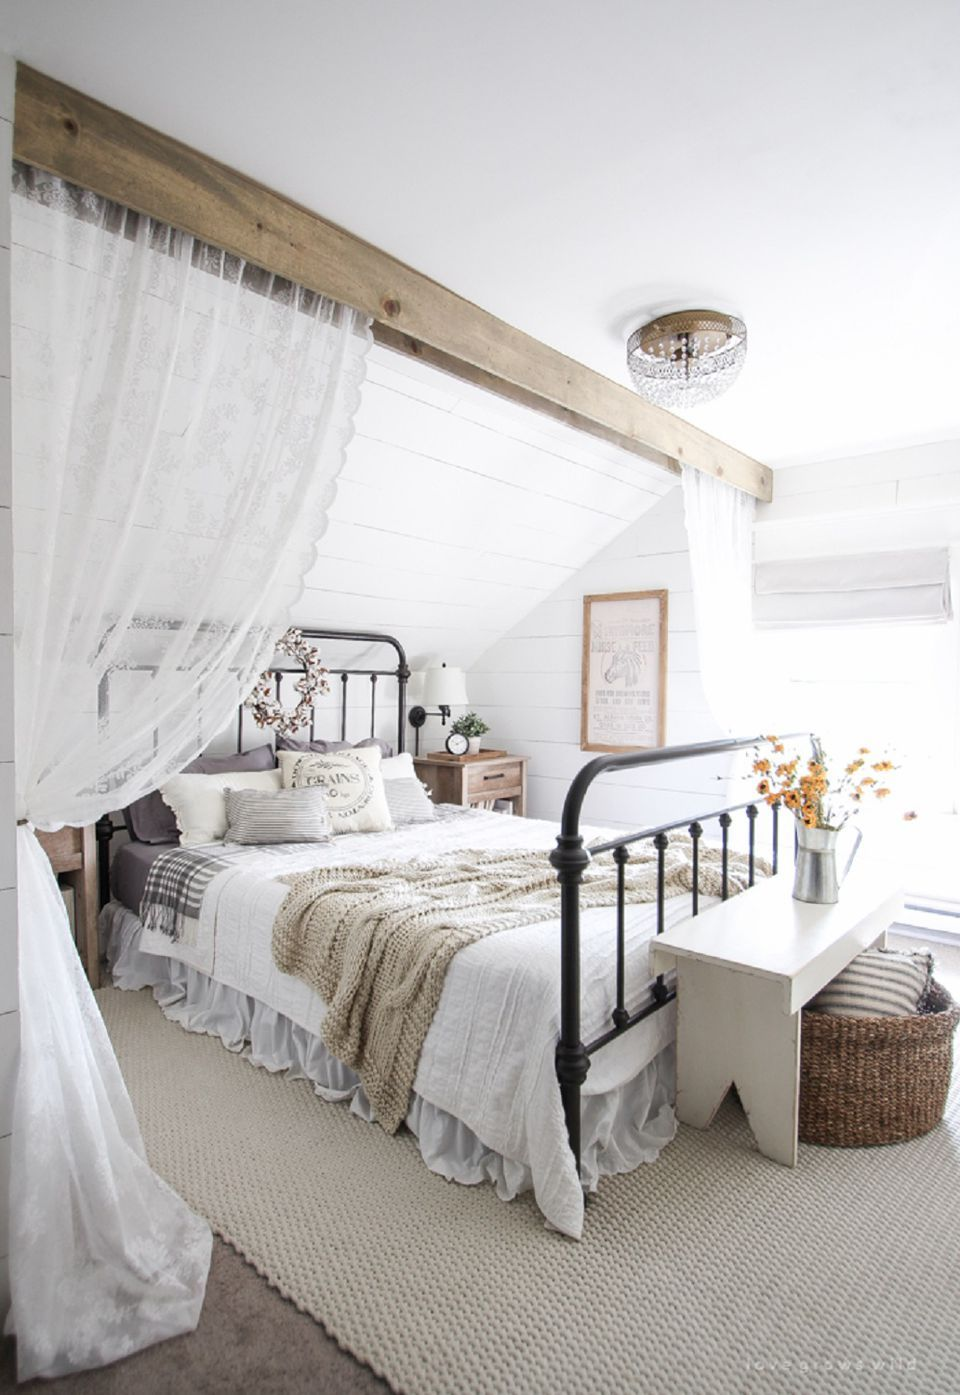 50 Decorating Ideas For Farmhouse Style Bedrooms Remodel Bedroom